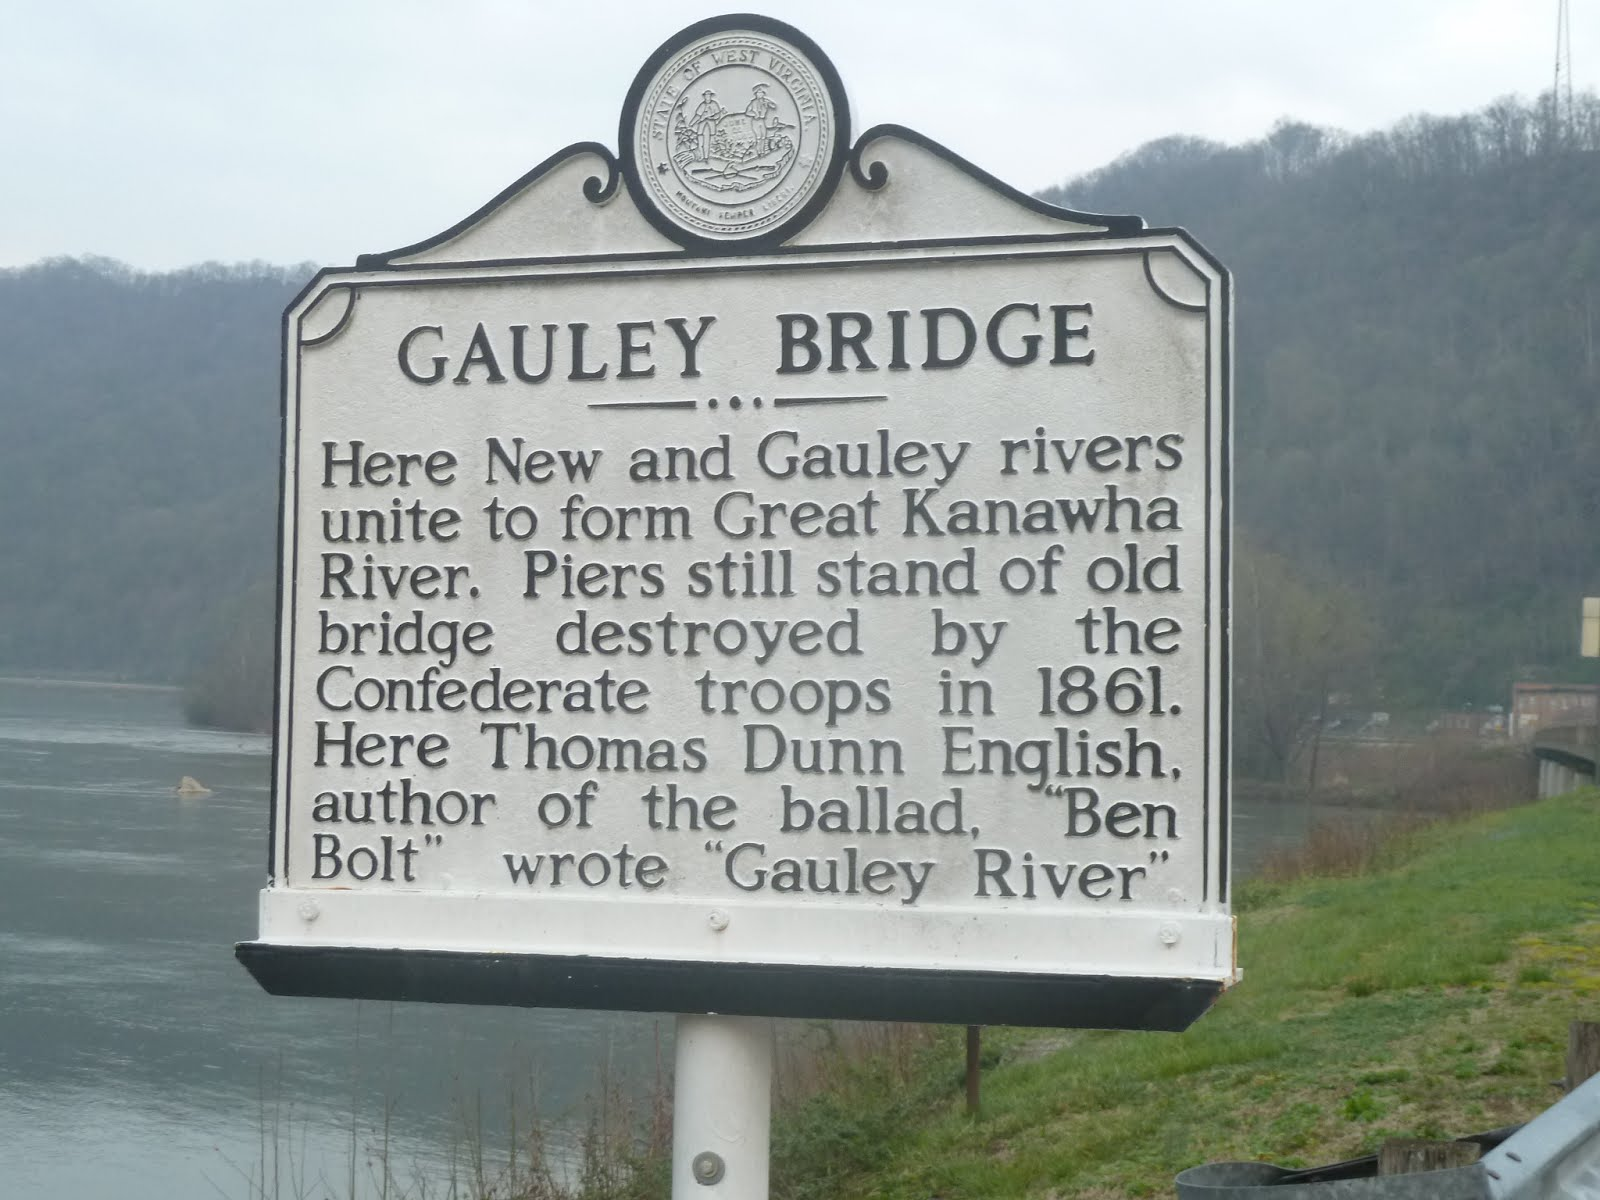 gauley bridge jewish singles The dating scene in gauley bridge doesn't need to be confusing all you need to do is jump online with datewhoyouwant to find hot singles living in your area datewhoyouwant makes it easy to find romance with someone that is perfectly suited to you.